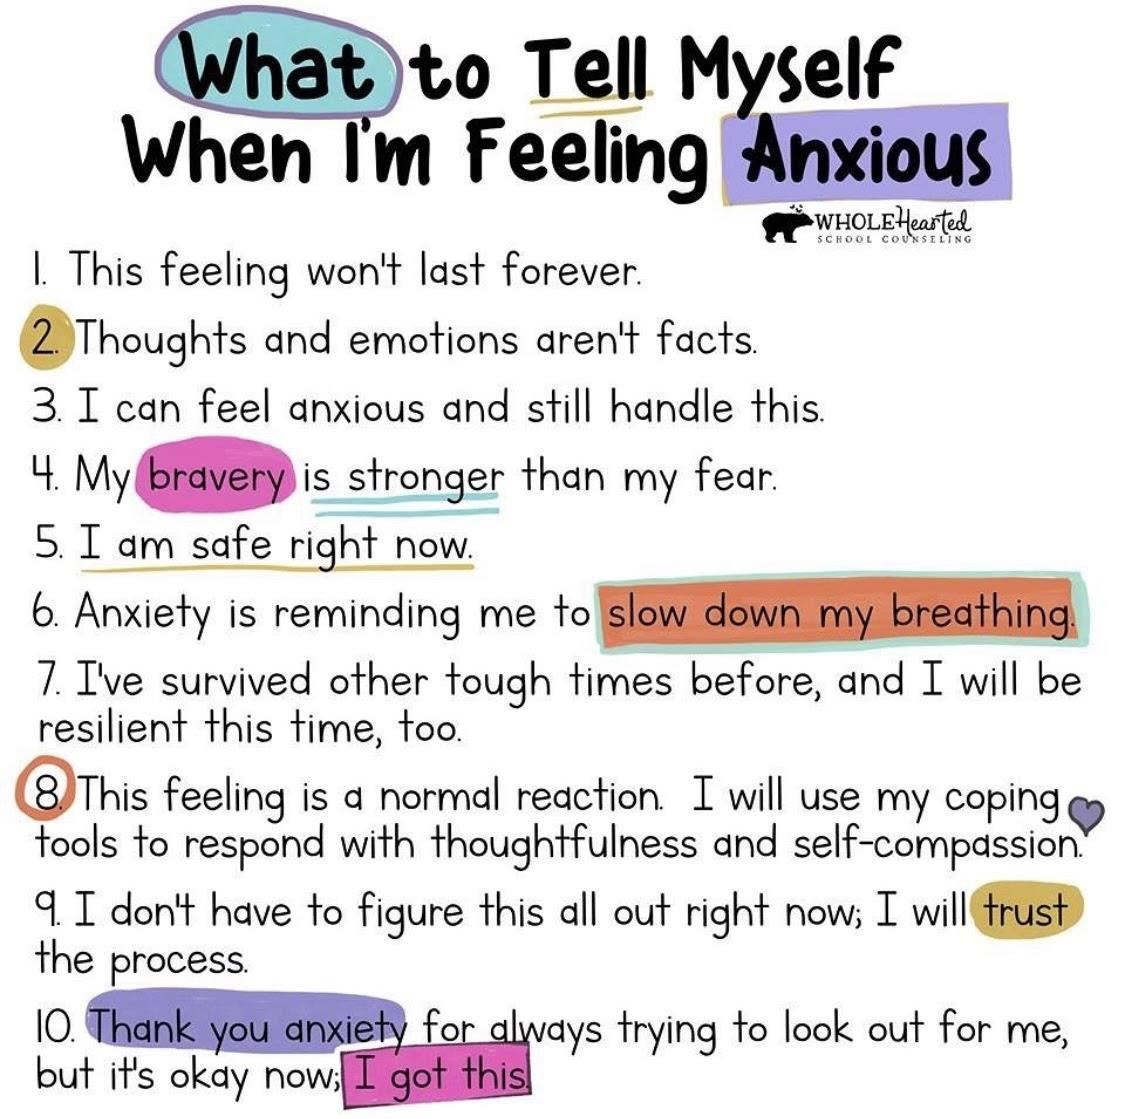 What to Tell Myself When I'm Feeling Anxious